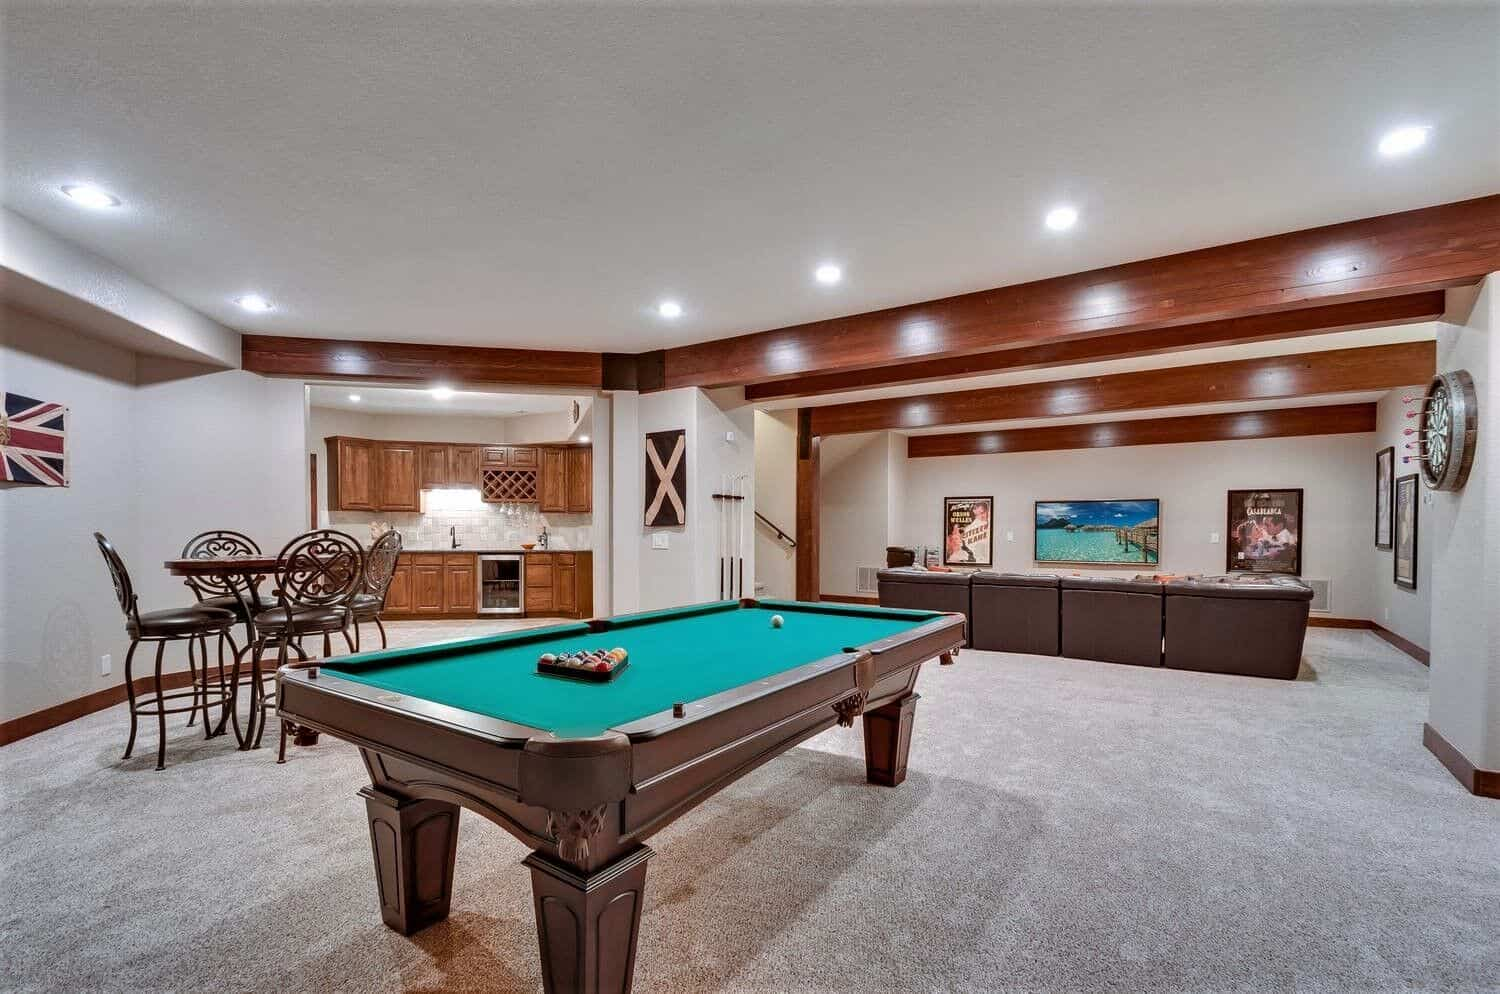 Walkout Basement with Large Wet Bar, Game Table and Media Area